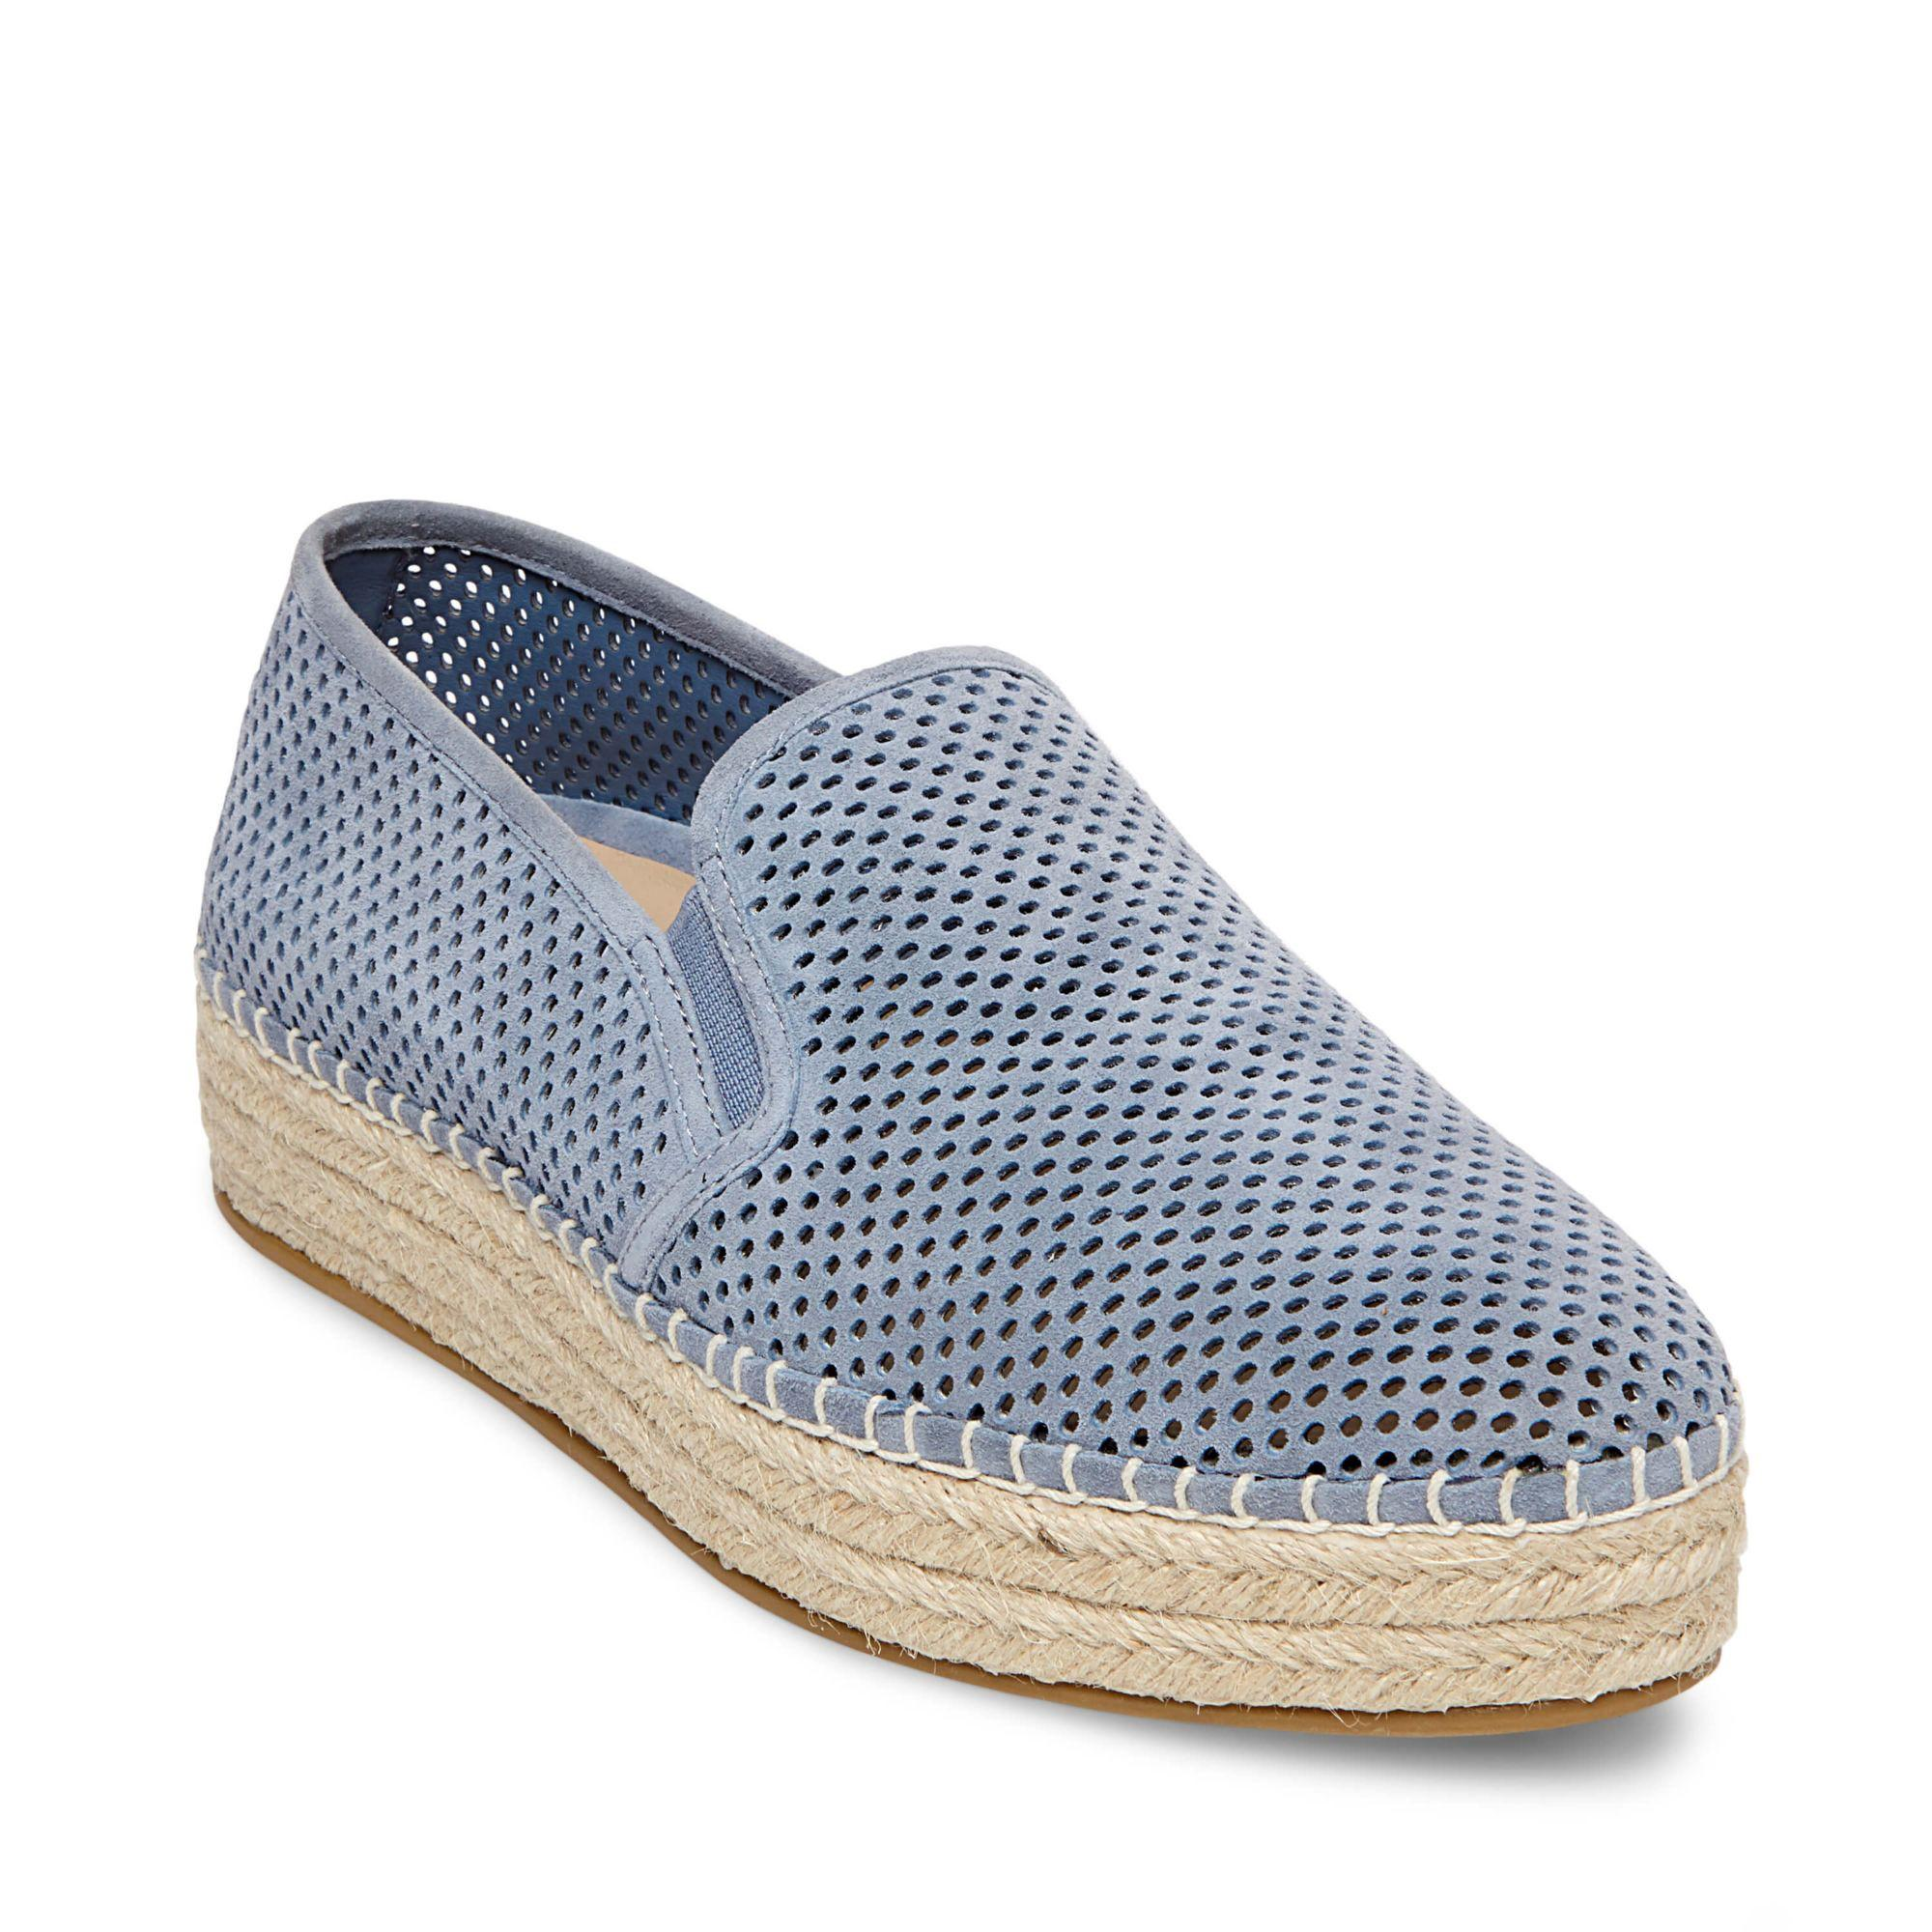 6f4ab814c7a Style Name  Steve Madden Wright Perforated Platform Espadrille (Women).  Style Number  5534615. Available in stores.